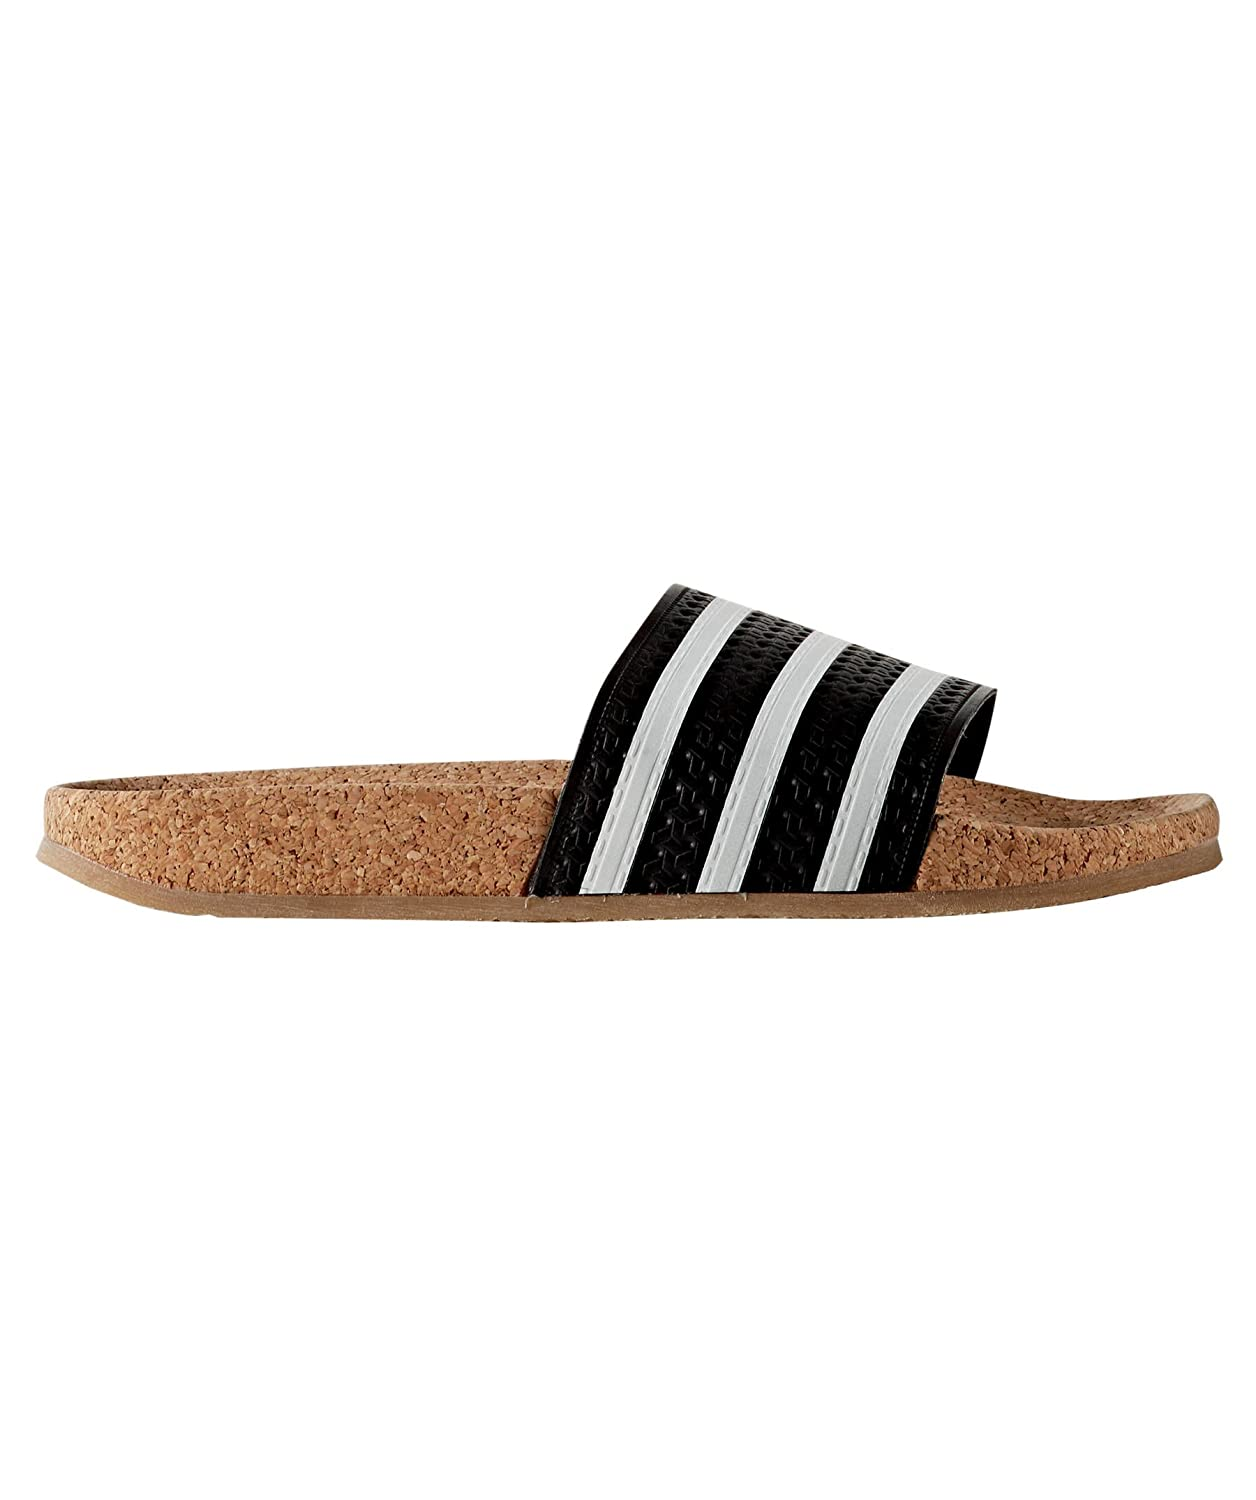 Buy Adidas ORIGINALS Women's Adilette Cork W Cblack, Ftwwht ...